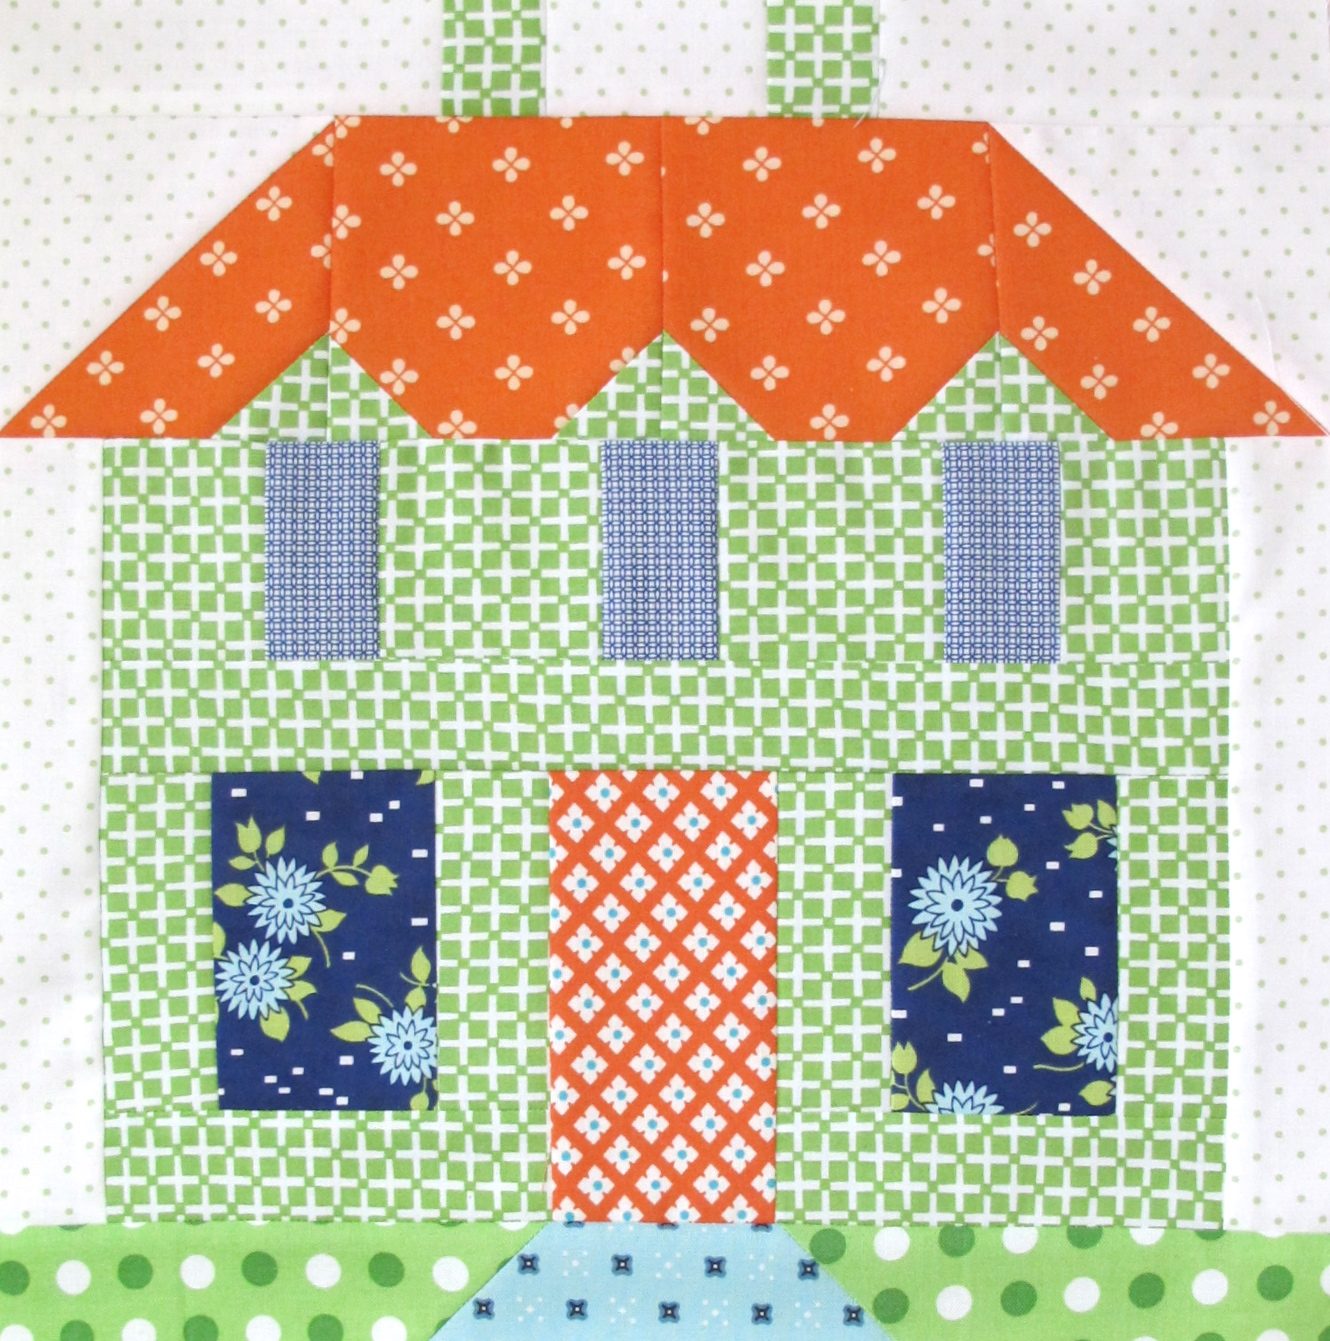 Bee In My Bonnet: My Home Sweet Home Quilt Block Pattern - In Quiltmakers Magazine 100 Blocks!!!